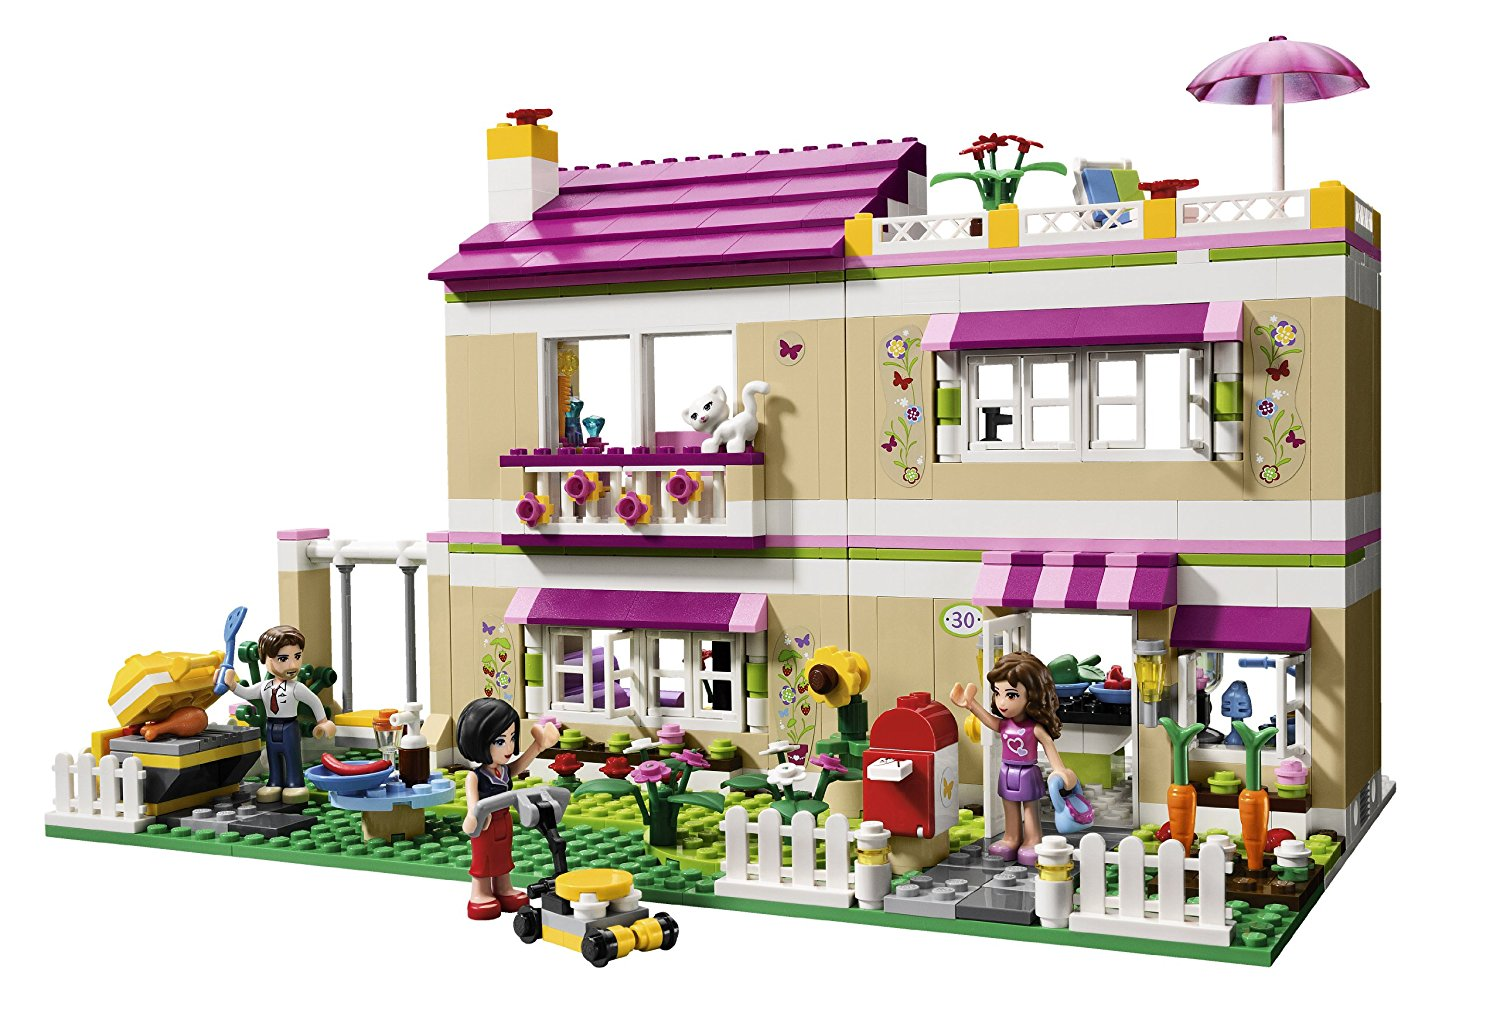 LEGO Friends Olivia's House (3315)-kids toys, boys and girls building toys, learning toys, educational toys, gifts